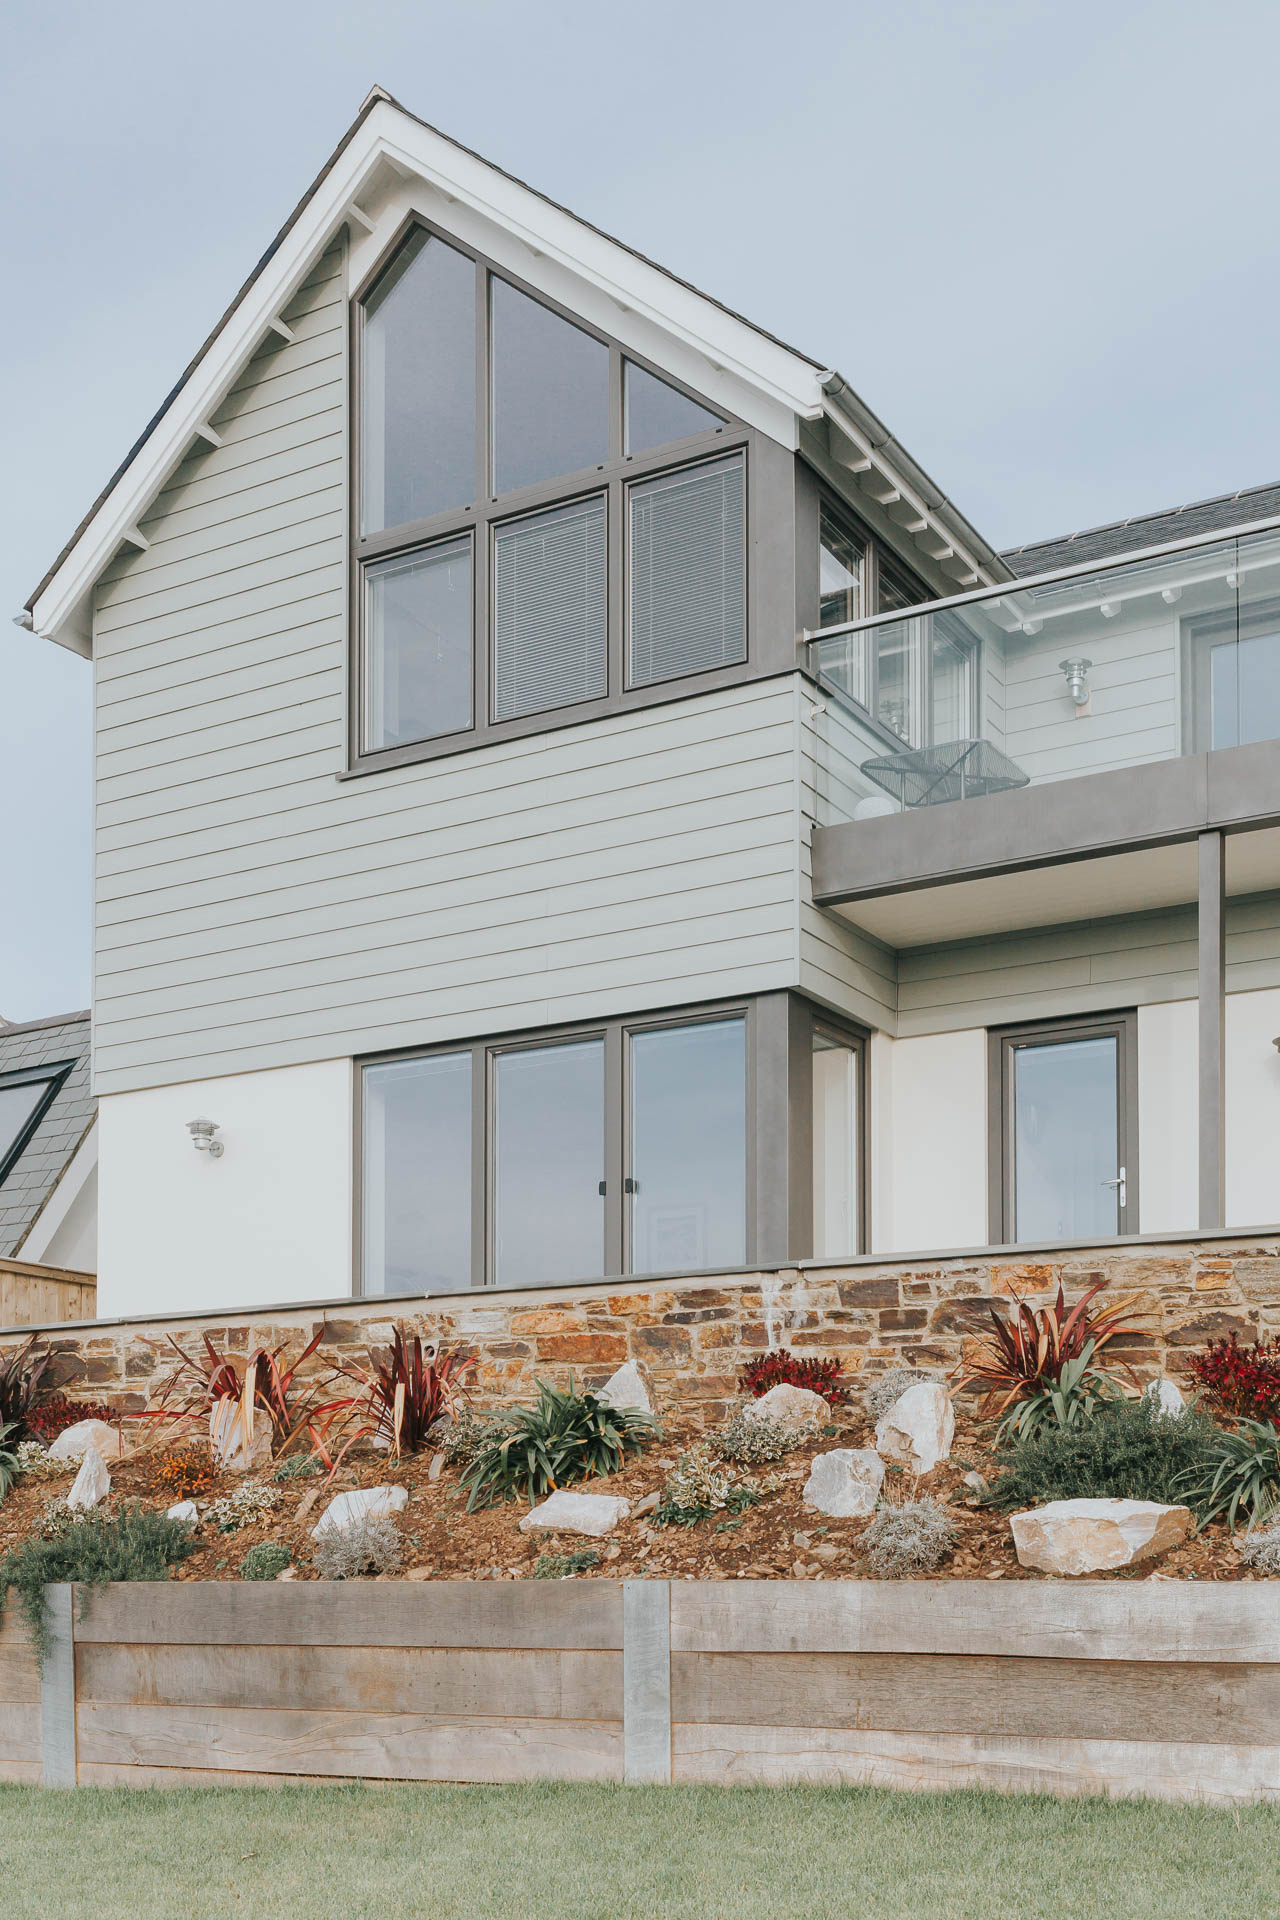 new seaside home with powder coated aluminium windows and fibre cement cladding boards by architects in salcombe andrew lethbridge associates